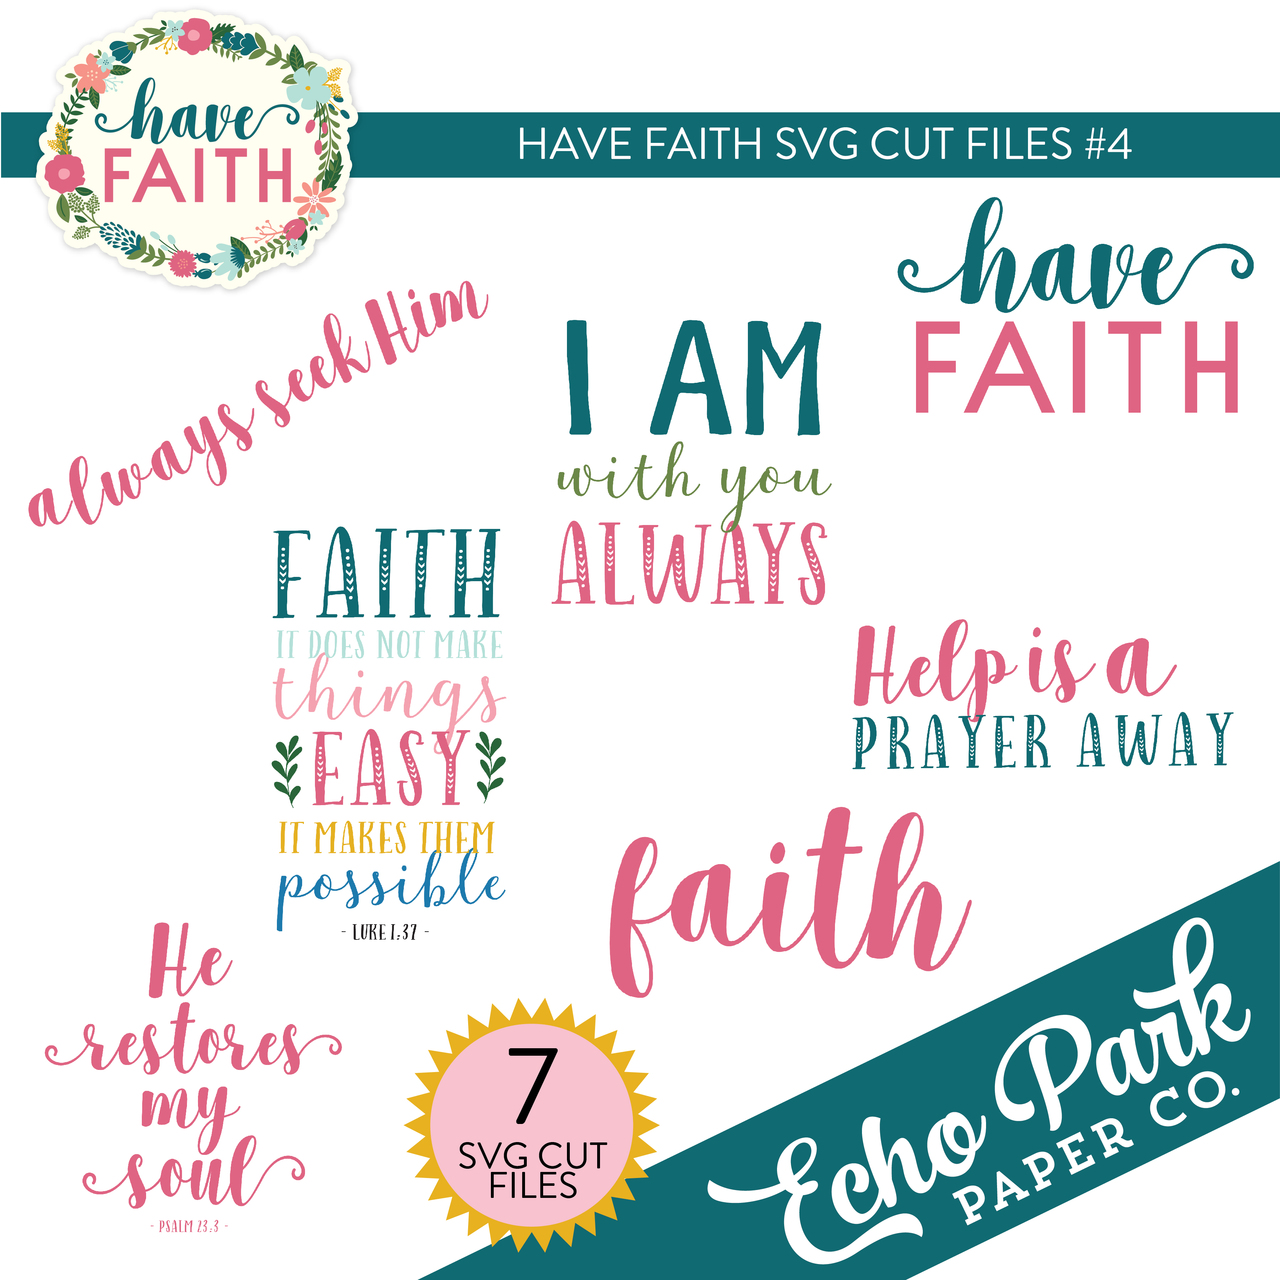 Have Faith SVG Cut Files #4